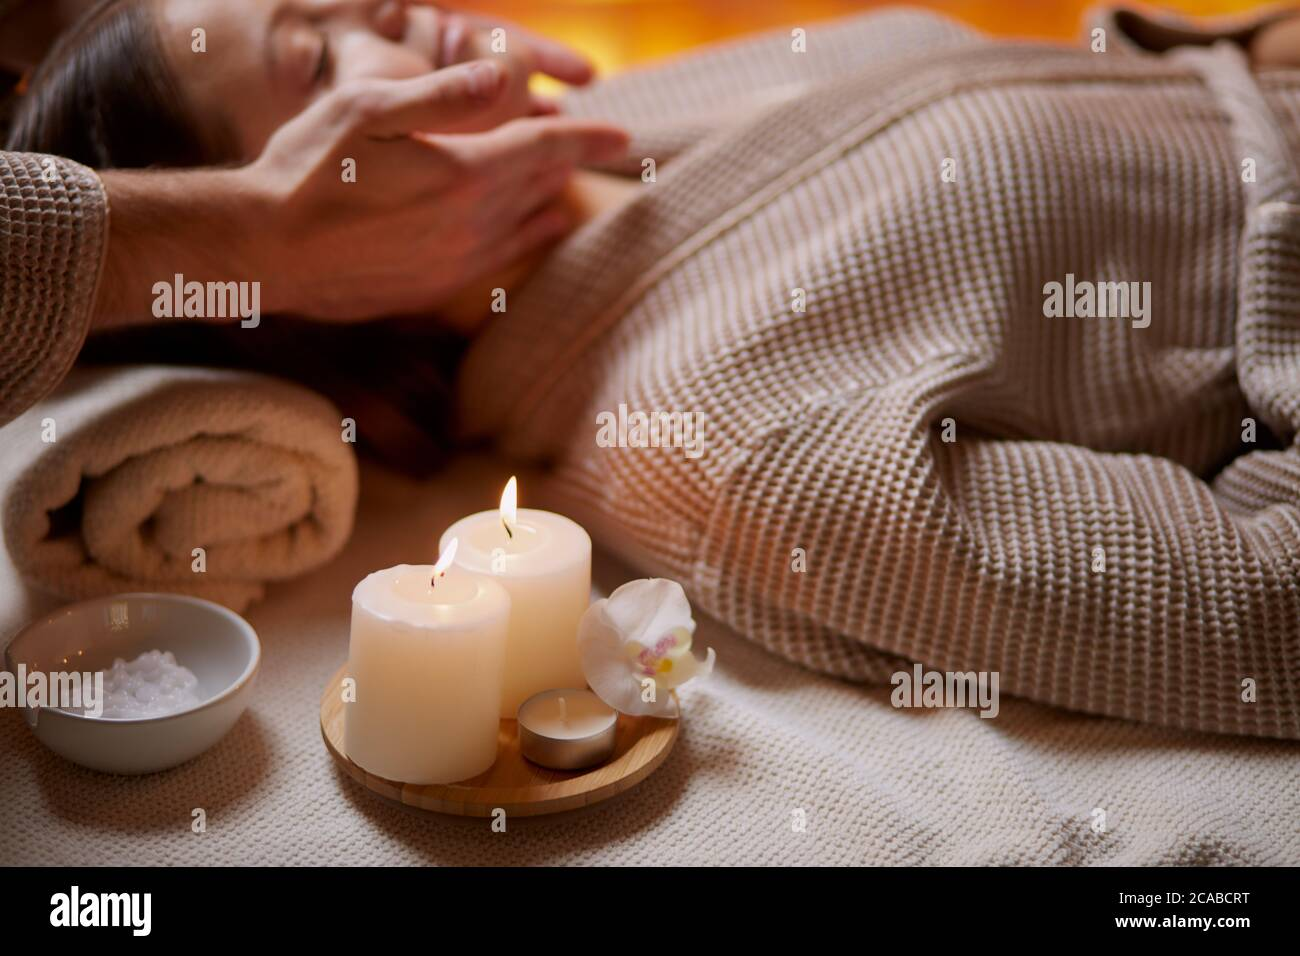 Young girl having massage on her face in spa salon. Wearing bathrobe, candles near her. Beauty treatment Stock Photo